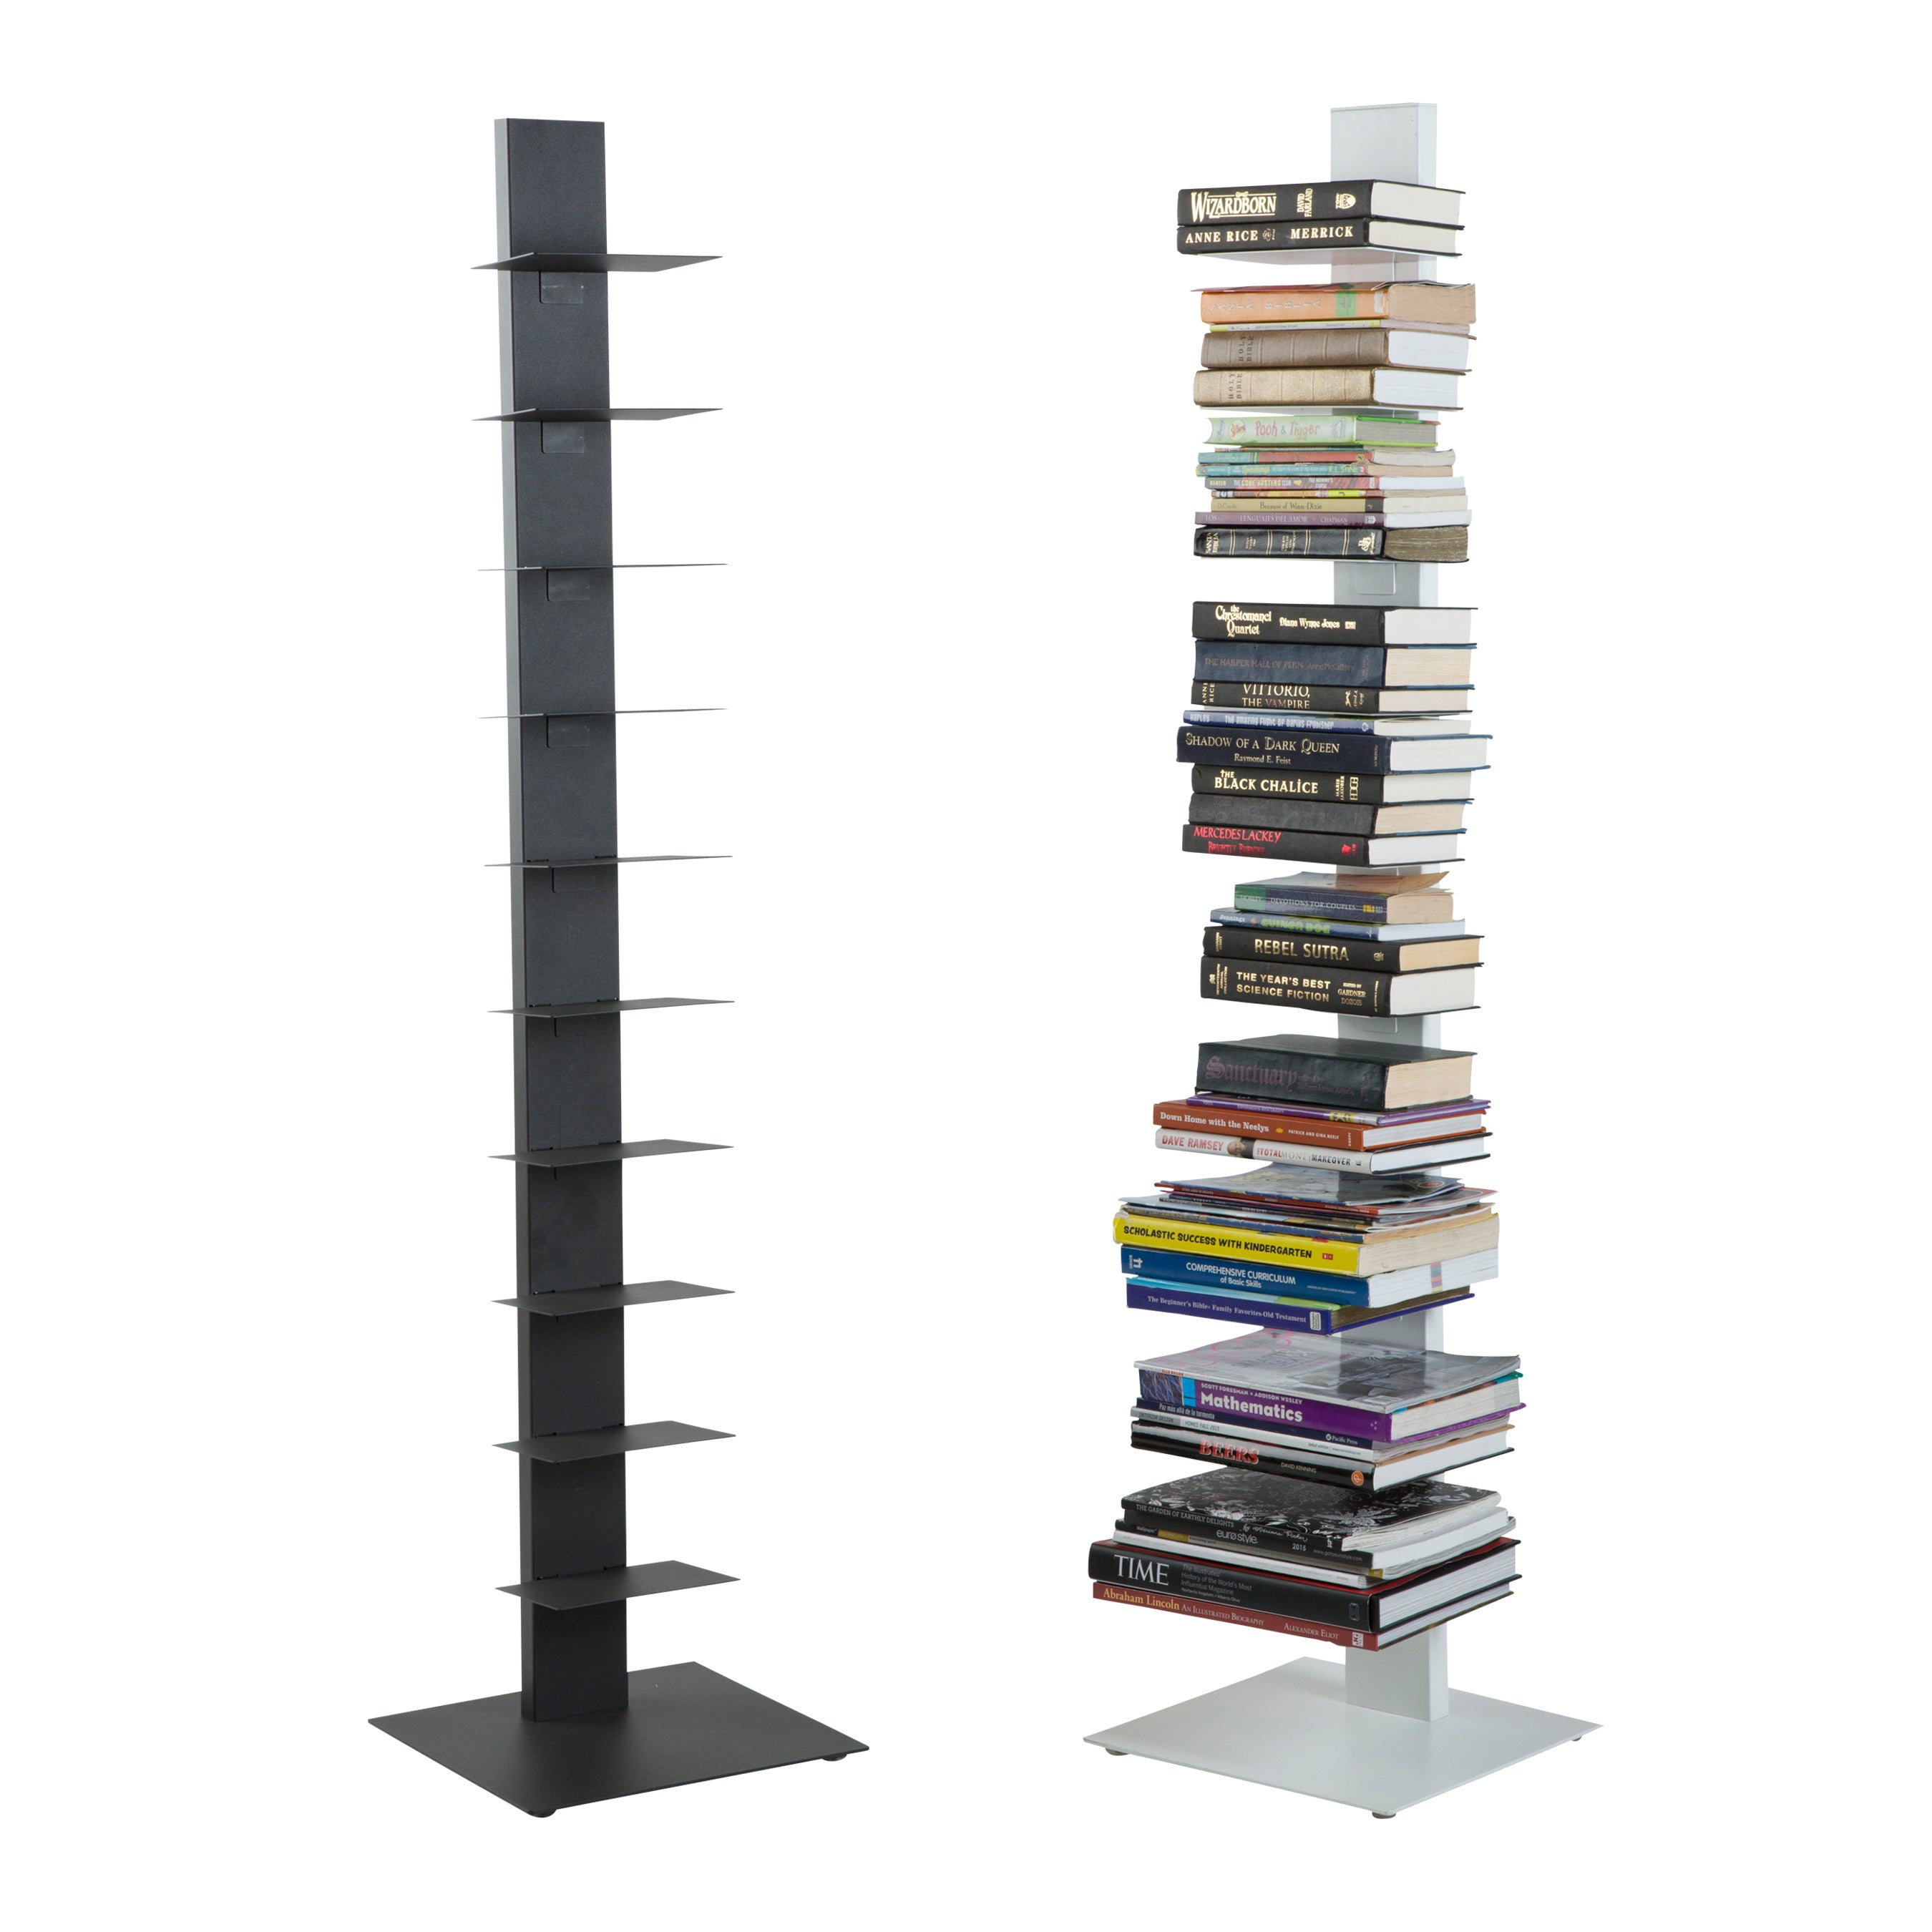 palladian bexley amusing bookca favored breathtaking noteworthy bookcases and size marvelous winsome bookcase uncategorized dvd utility tower stunning of full walmart venture metal spine